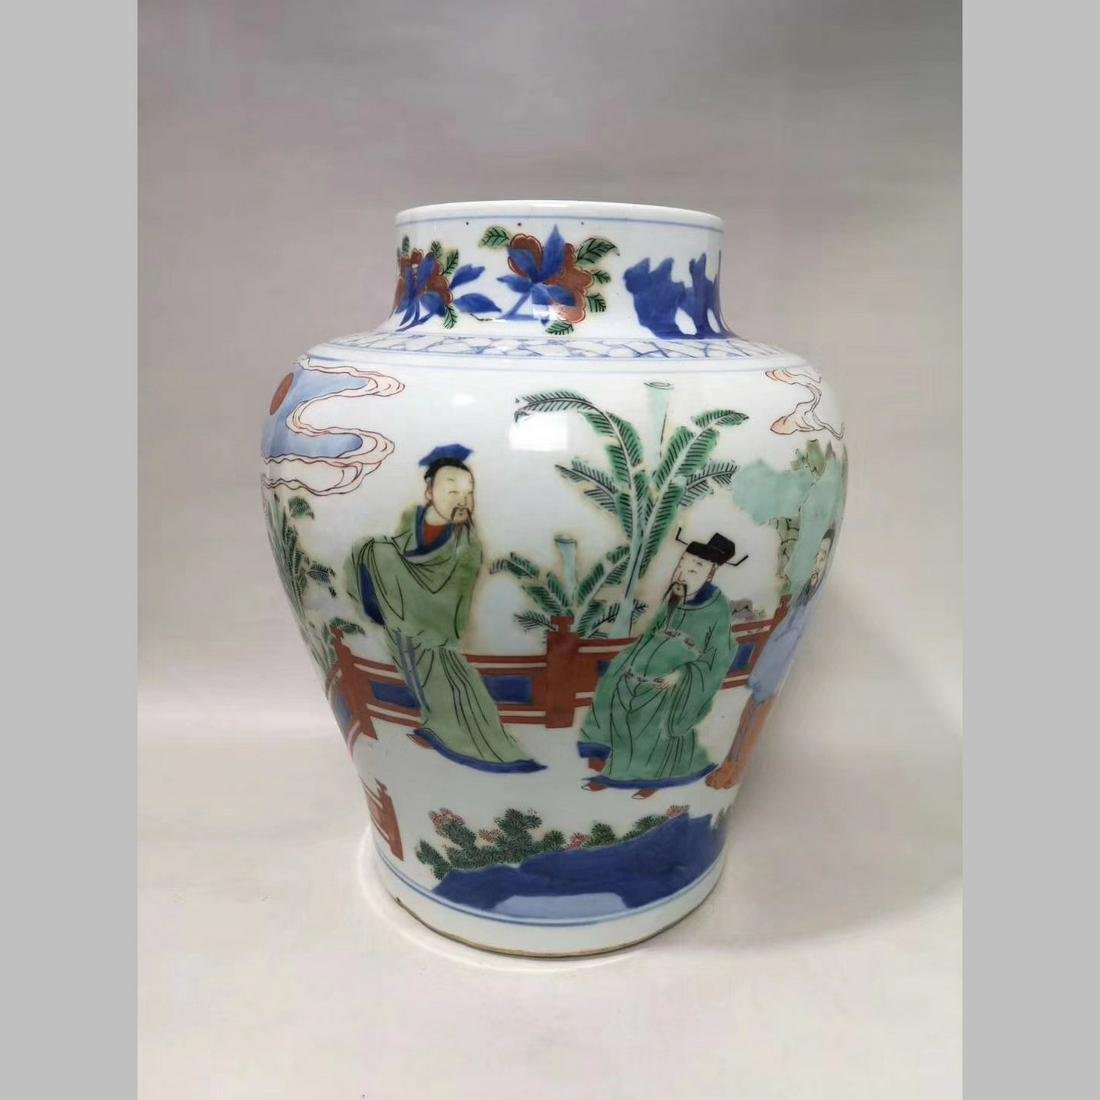 China,19C.A porcelain jar.